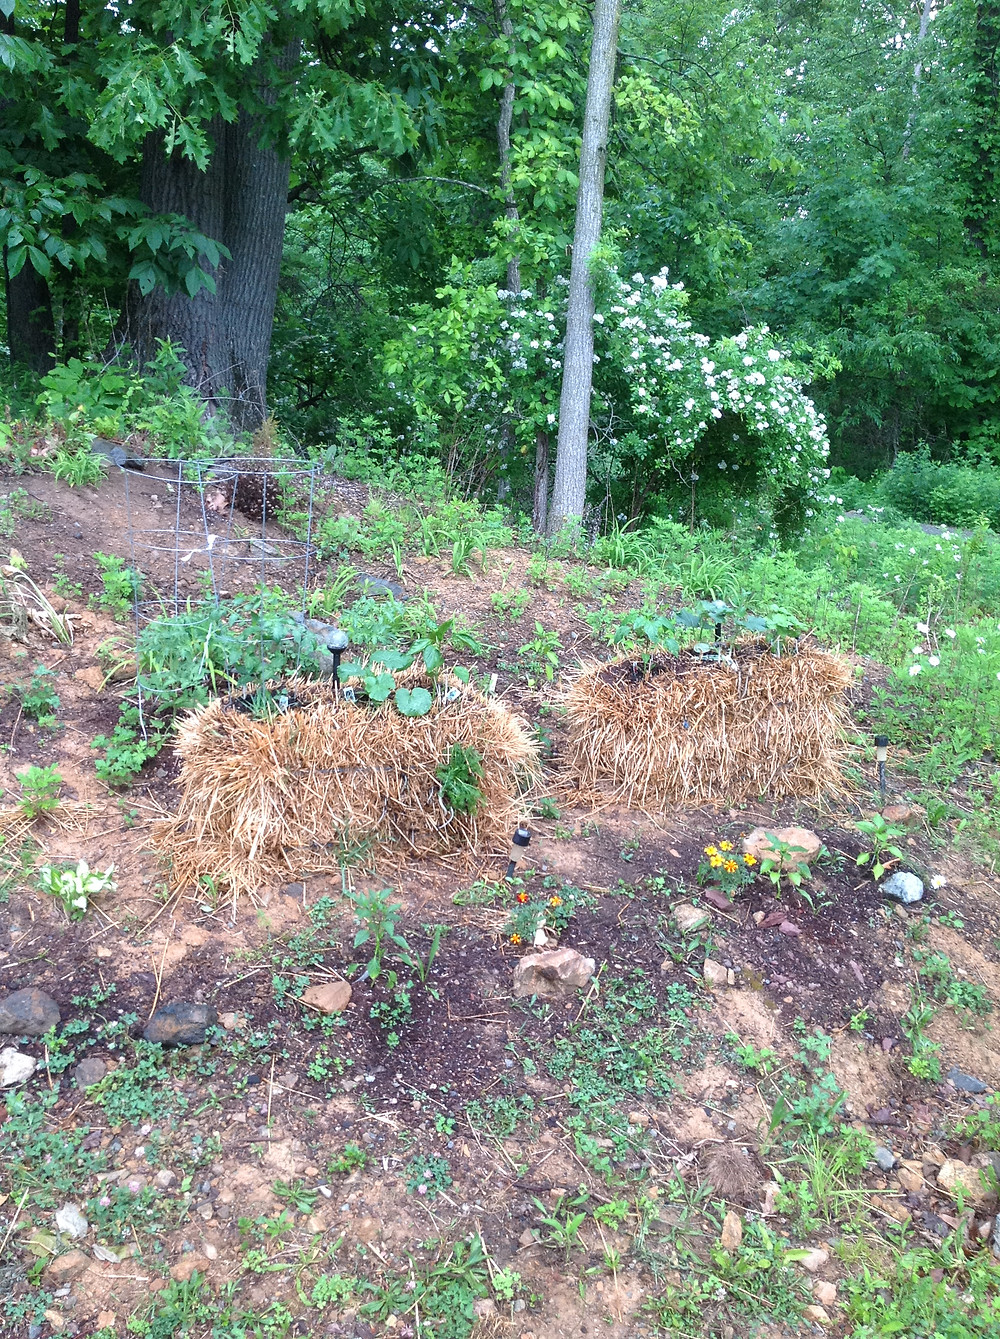 Two straw bales are displaying with green plant growing on top of them. A straw bale garden is an easy and convenient option for beginners.